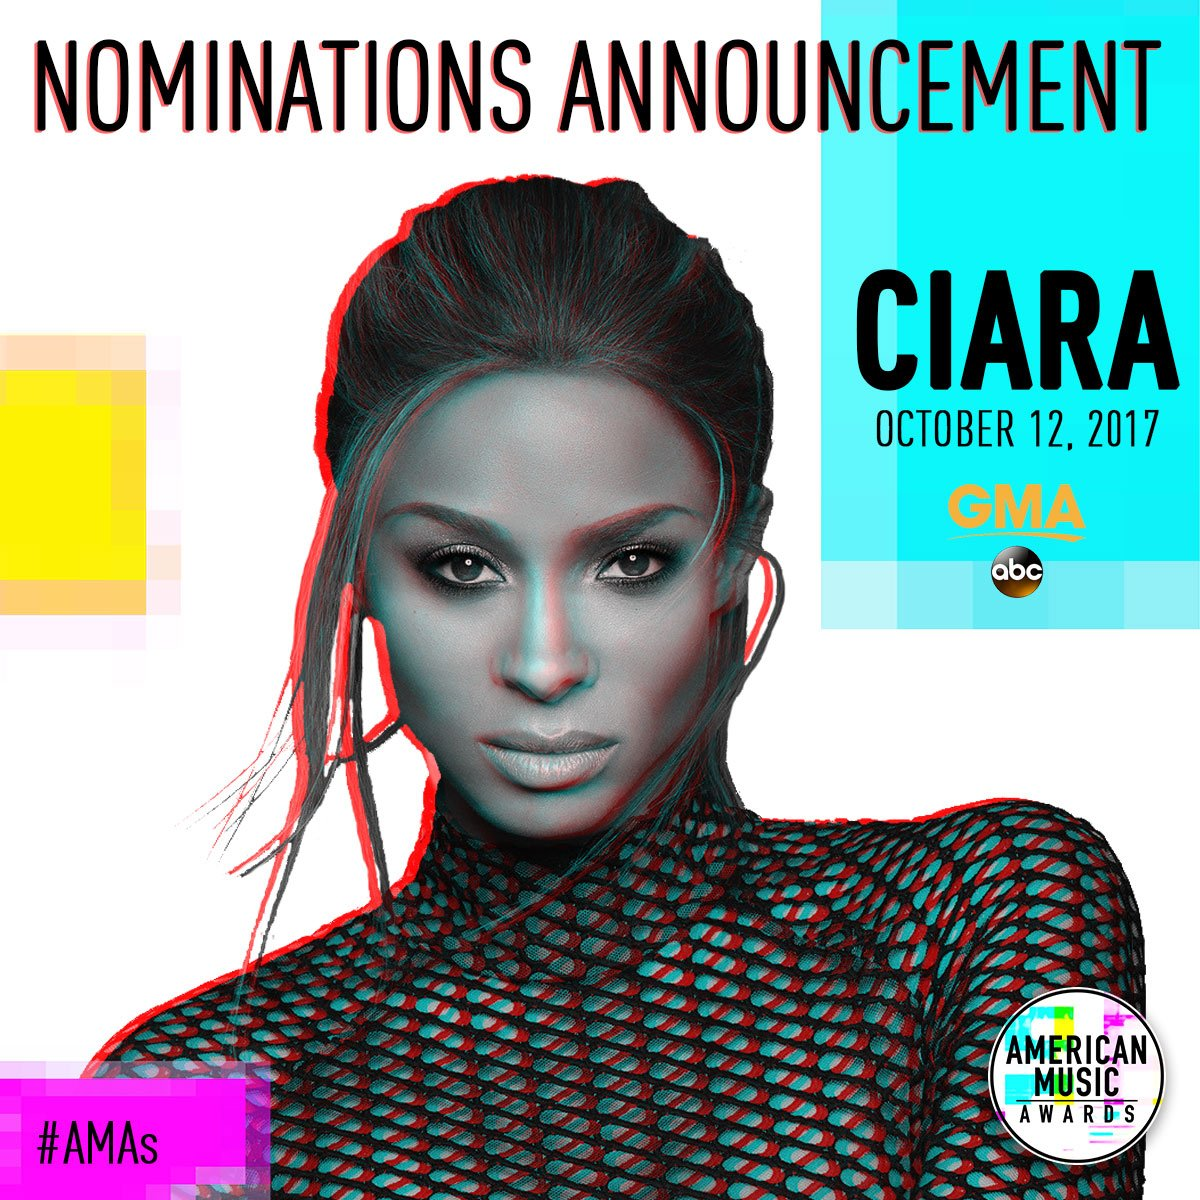 THIS MORNING: @ciara brings us the @AMAs nominations LIVE in Times Square, only on @GMA! https://t.co/xUiBbMNYR3